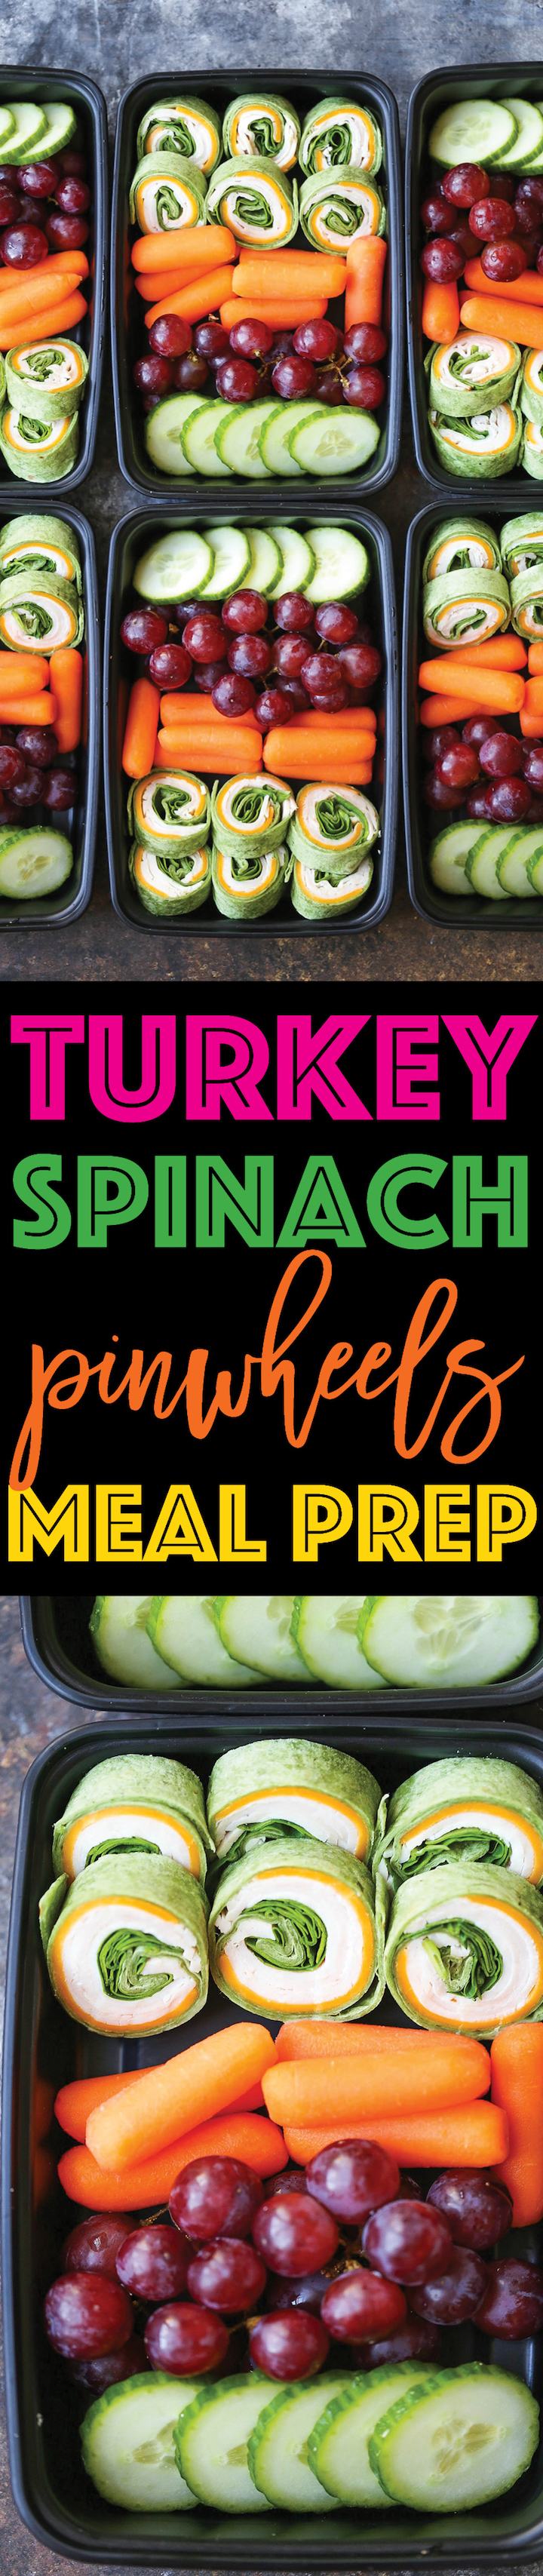 Turkey Spinach Pinwheels Meal Prep -Prep your lunches for the week with these turkey spinach and cheese pinwheels! No more overpriced snacks and lunches!!!